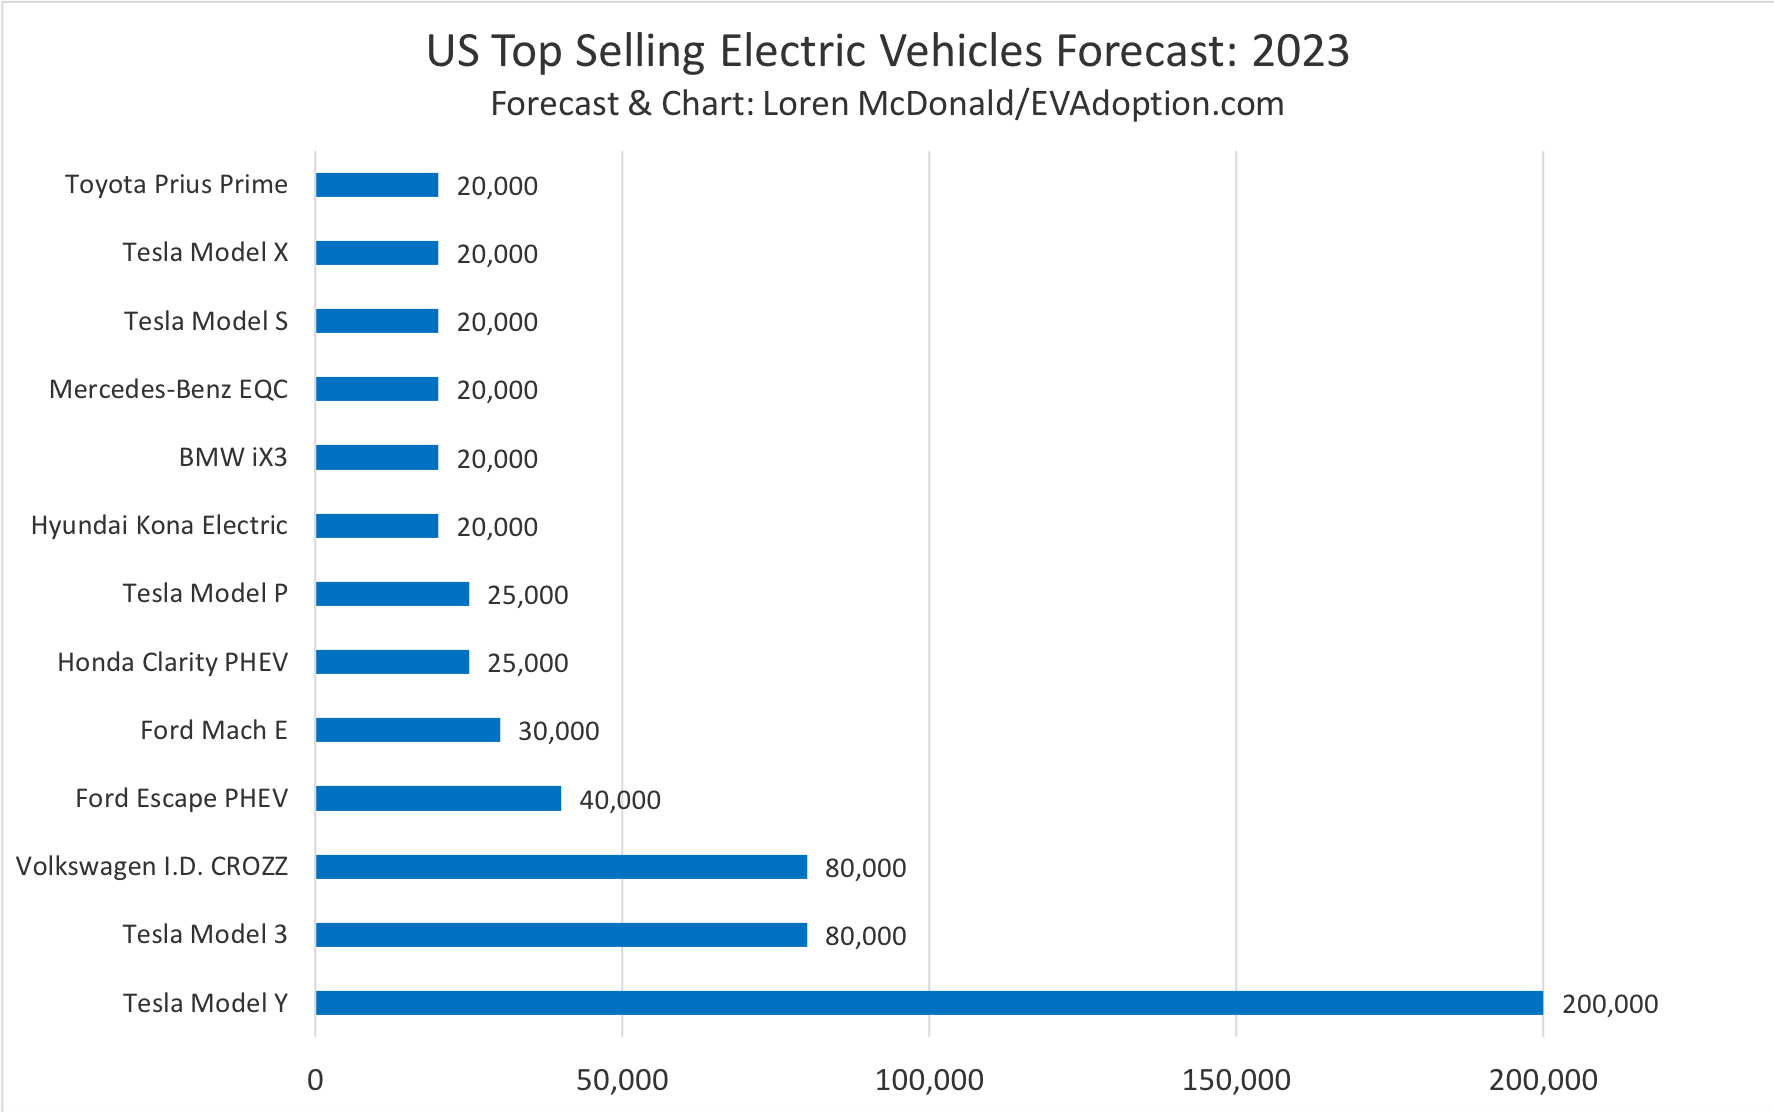 US Top Selling Electric Vehicles Forecast-2023-Loren McDonald